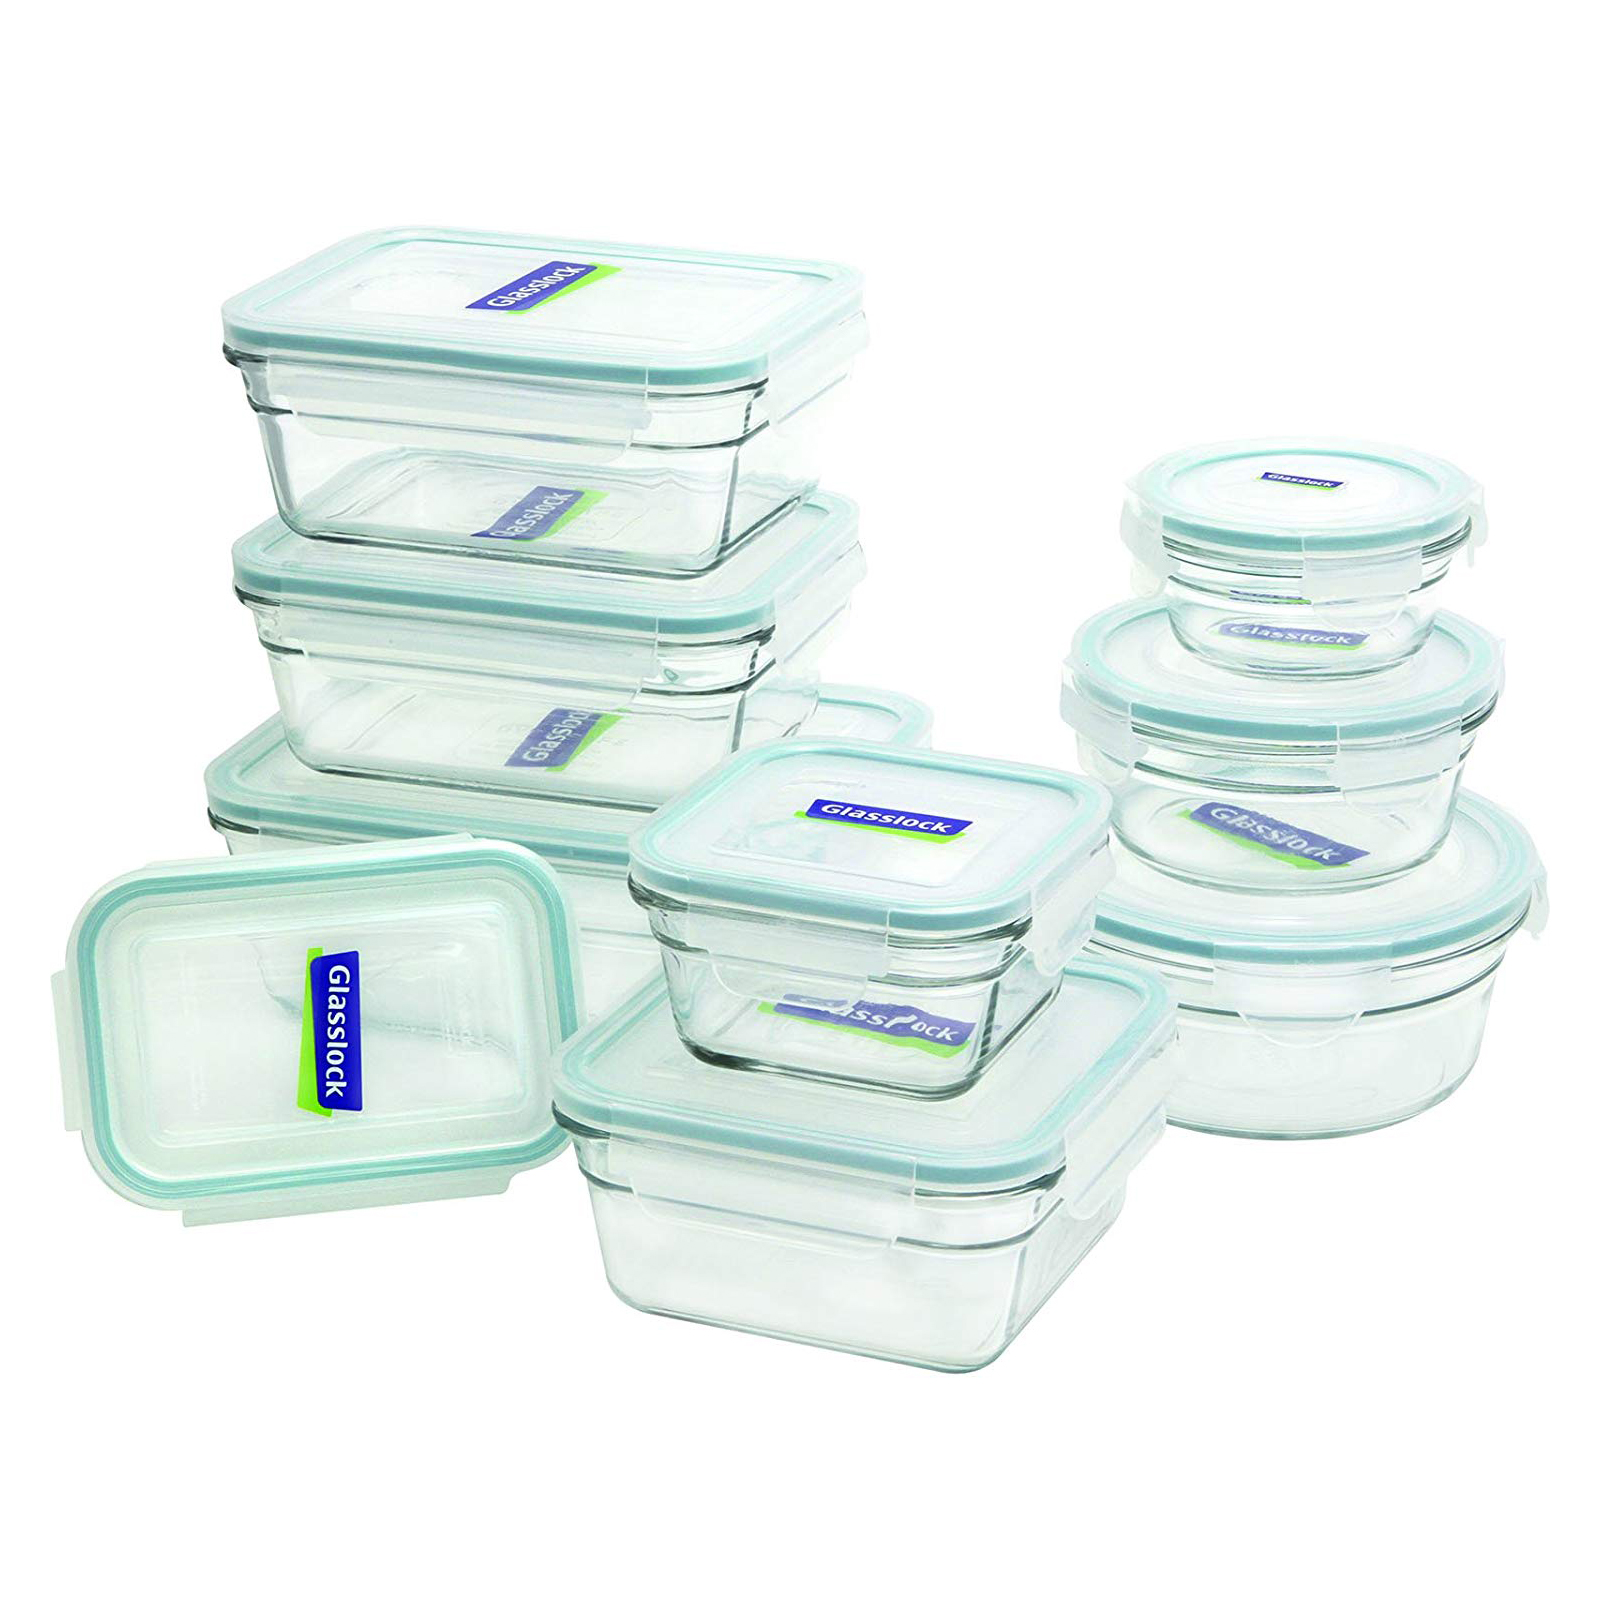 Glasslock 18 piece assorted glass containers